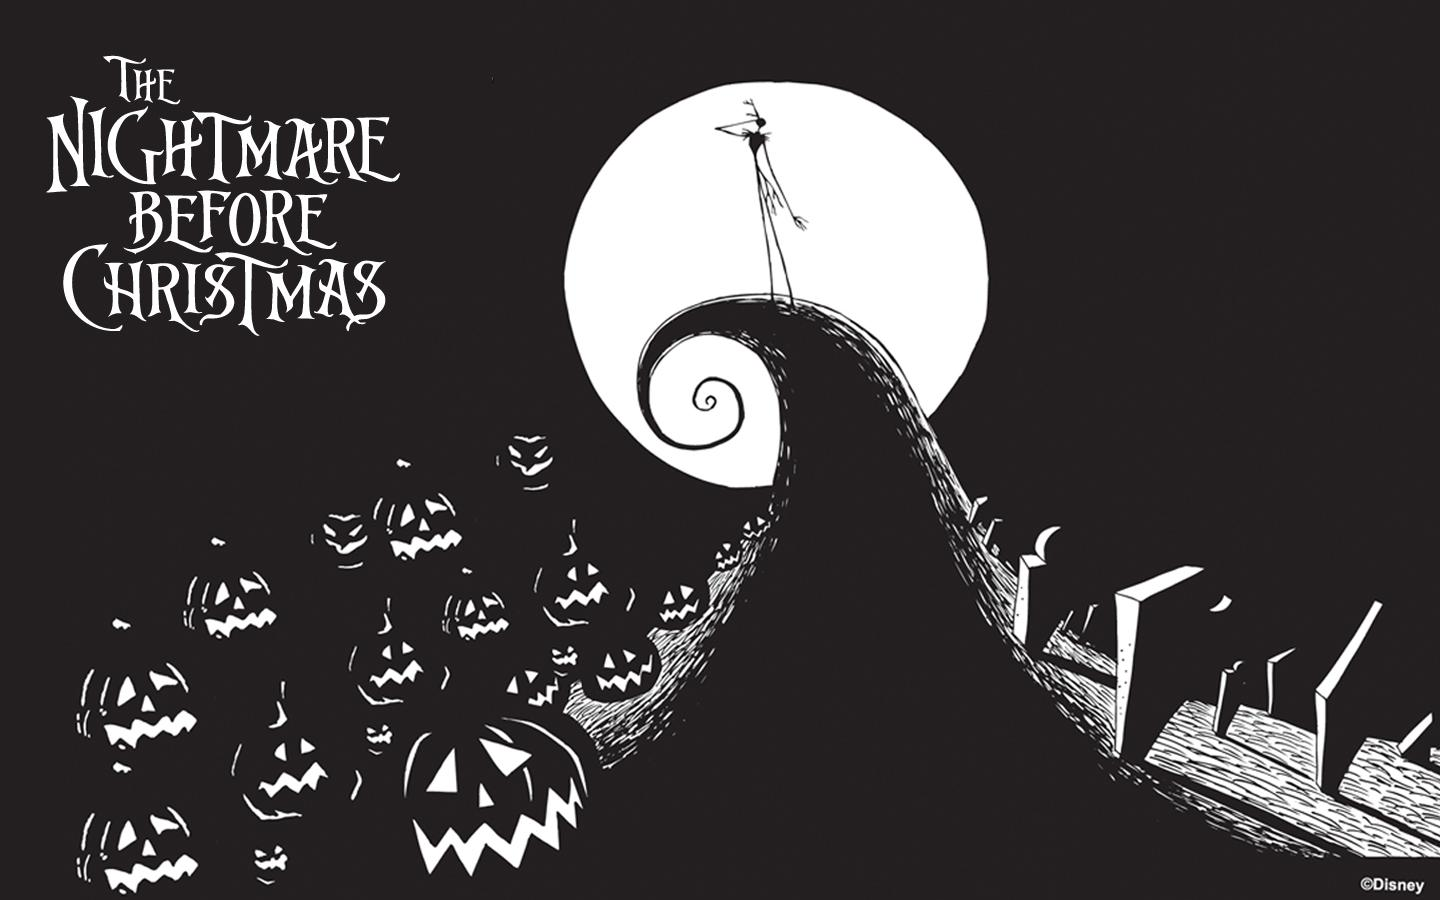 The nightmare before christmas wallpaper - SF Wallpaper